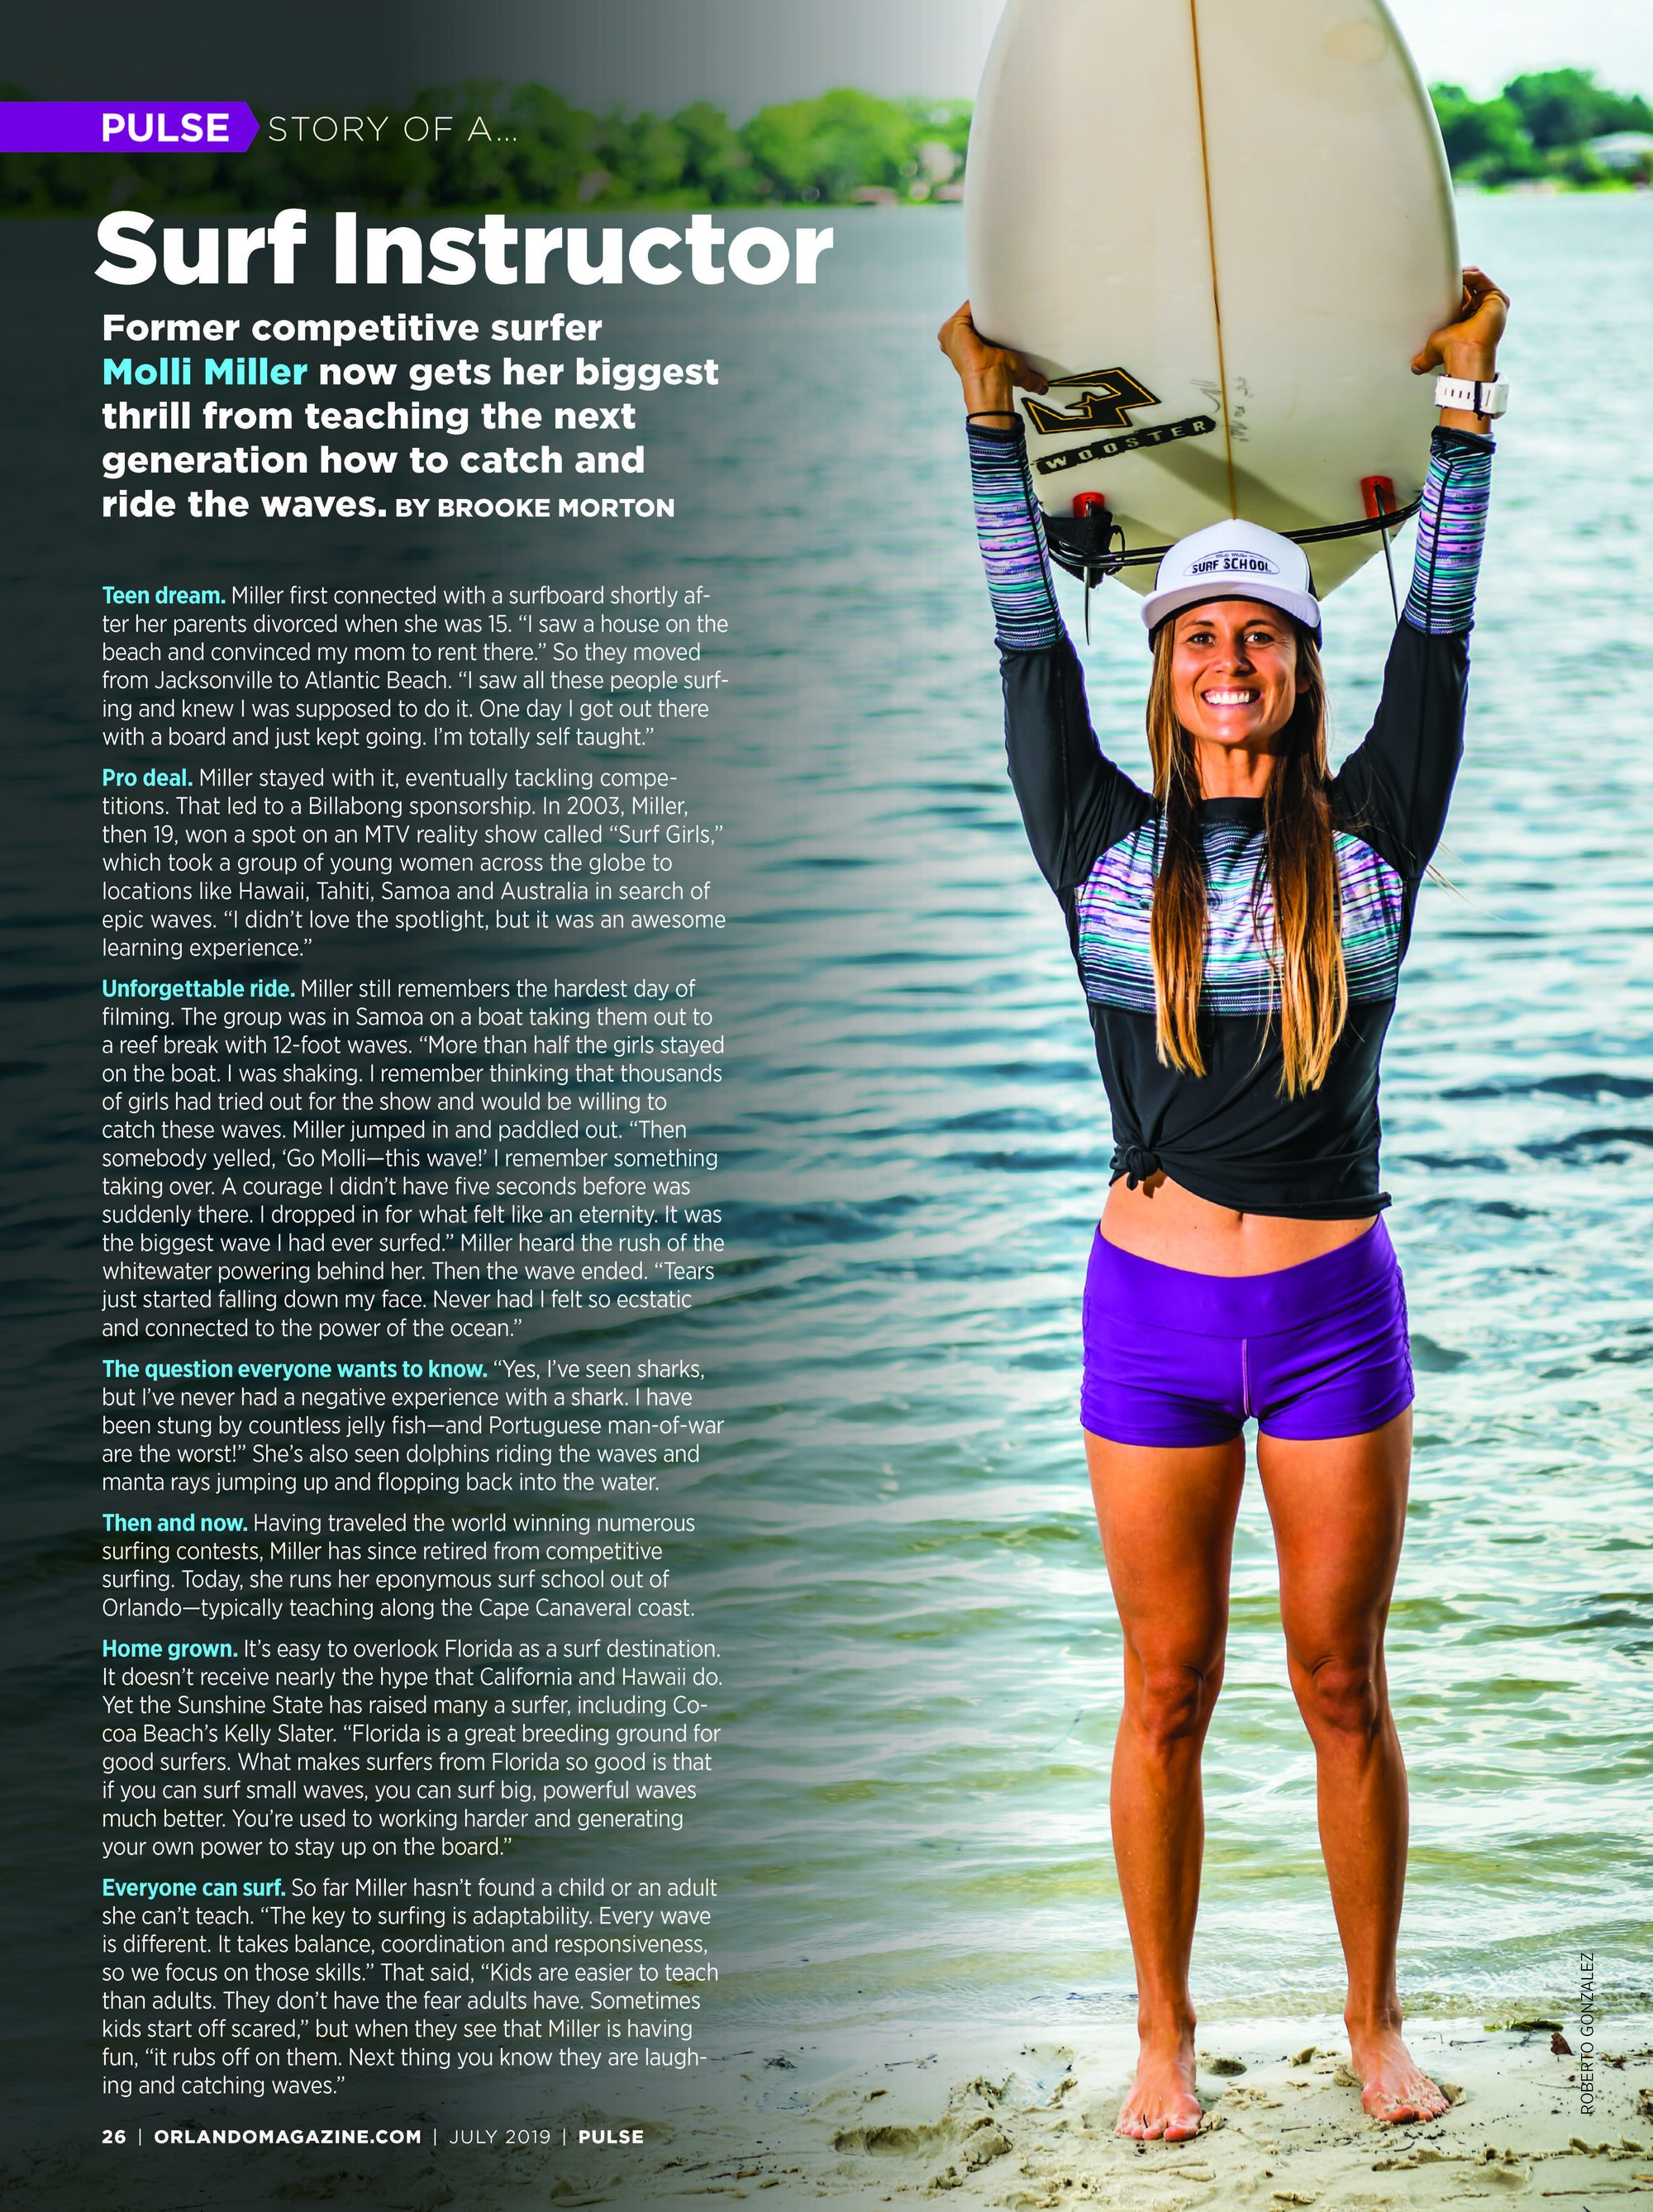 Molli Miller Surf Instructor Orlando Weekly